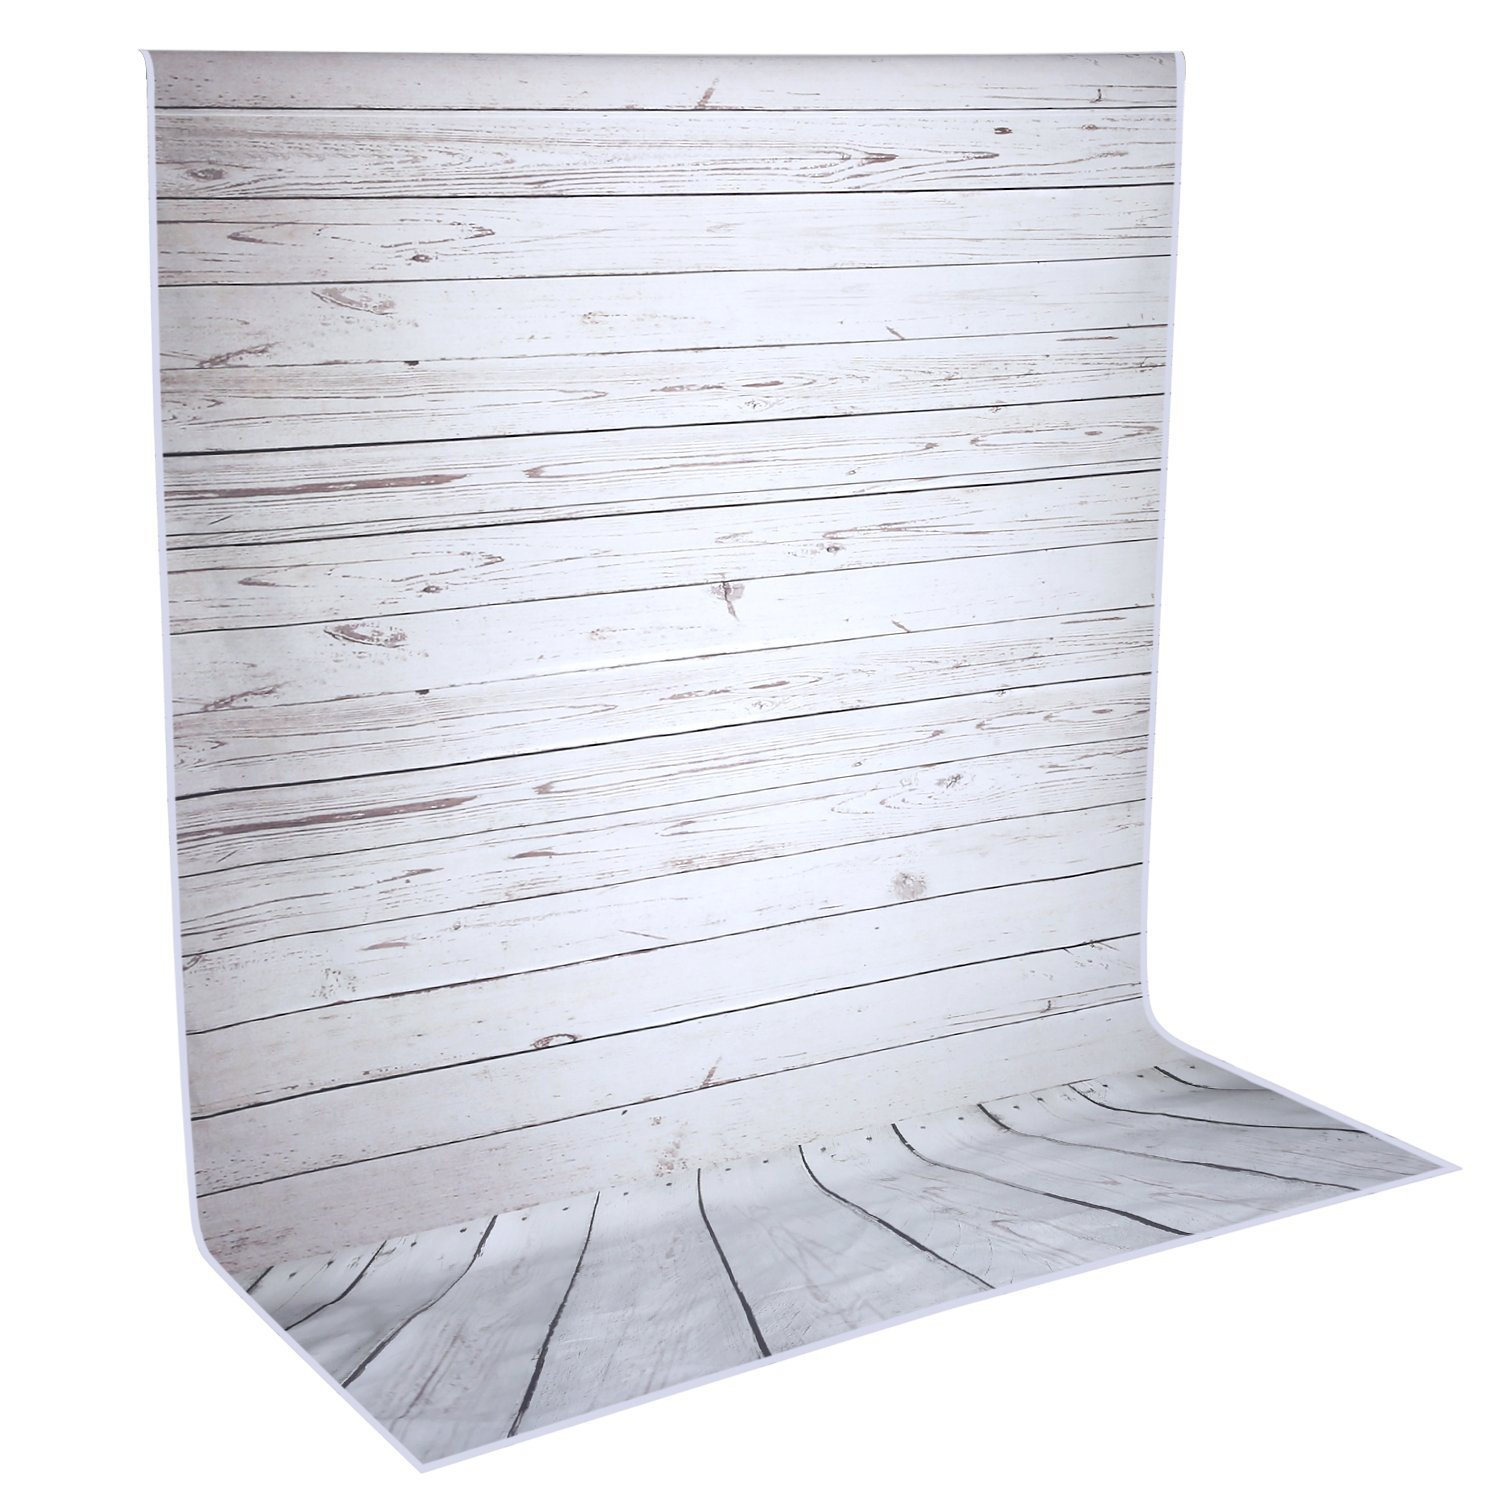 Neewer 5x7ft/152x213cm Light Grey 100% Polyester Wooden Backdrop Background for Photography Studio Video Shooting (Backdrop Only!)